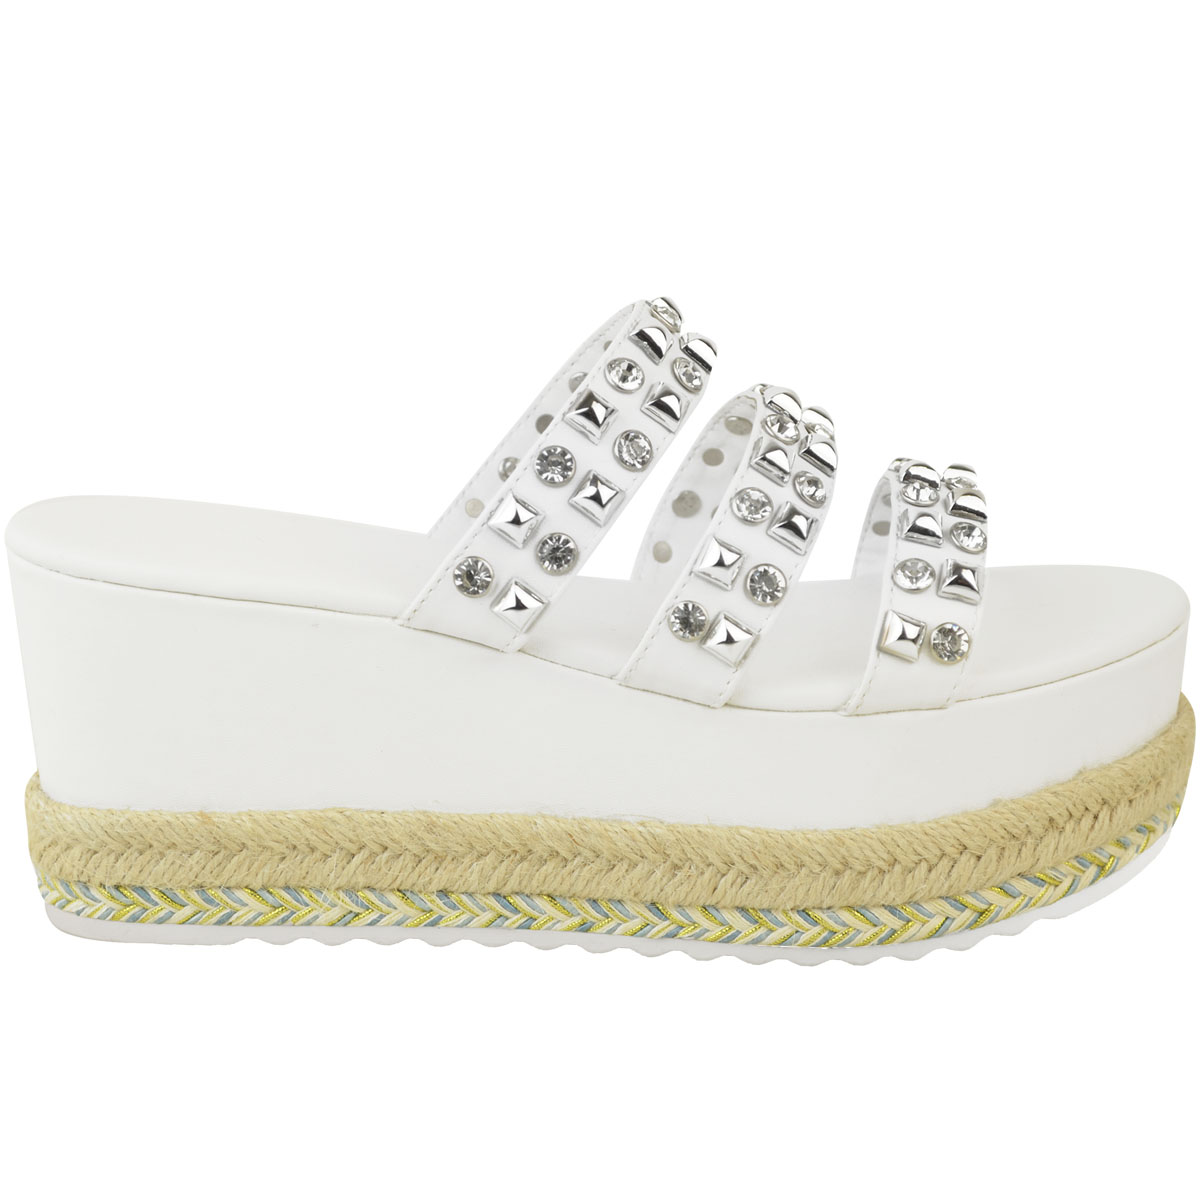 Womens-Ladies-Flatforms-Sandals-Espadrilles-Embellished-Stud-Jewel-Wedges-Size thumbnail 7